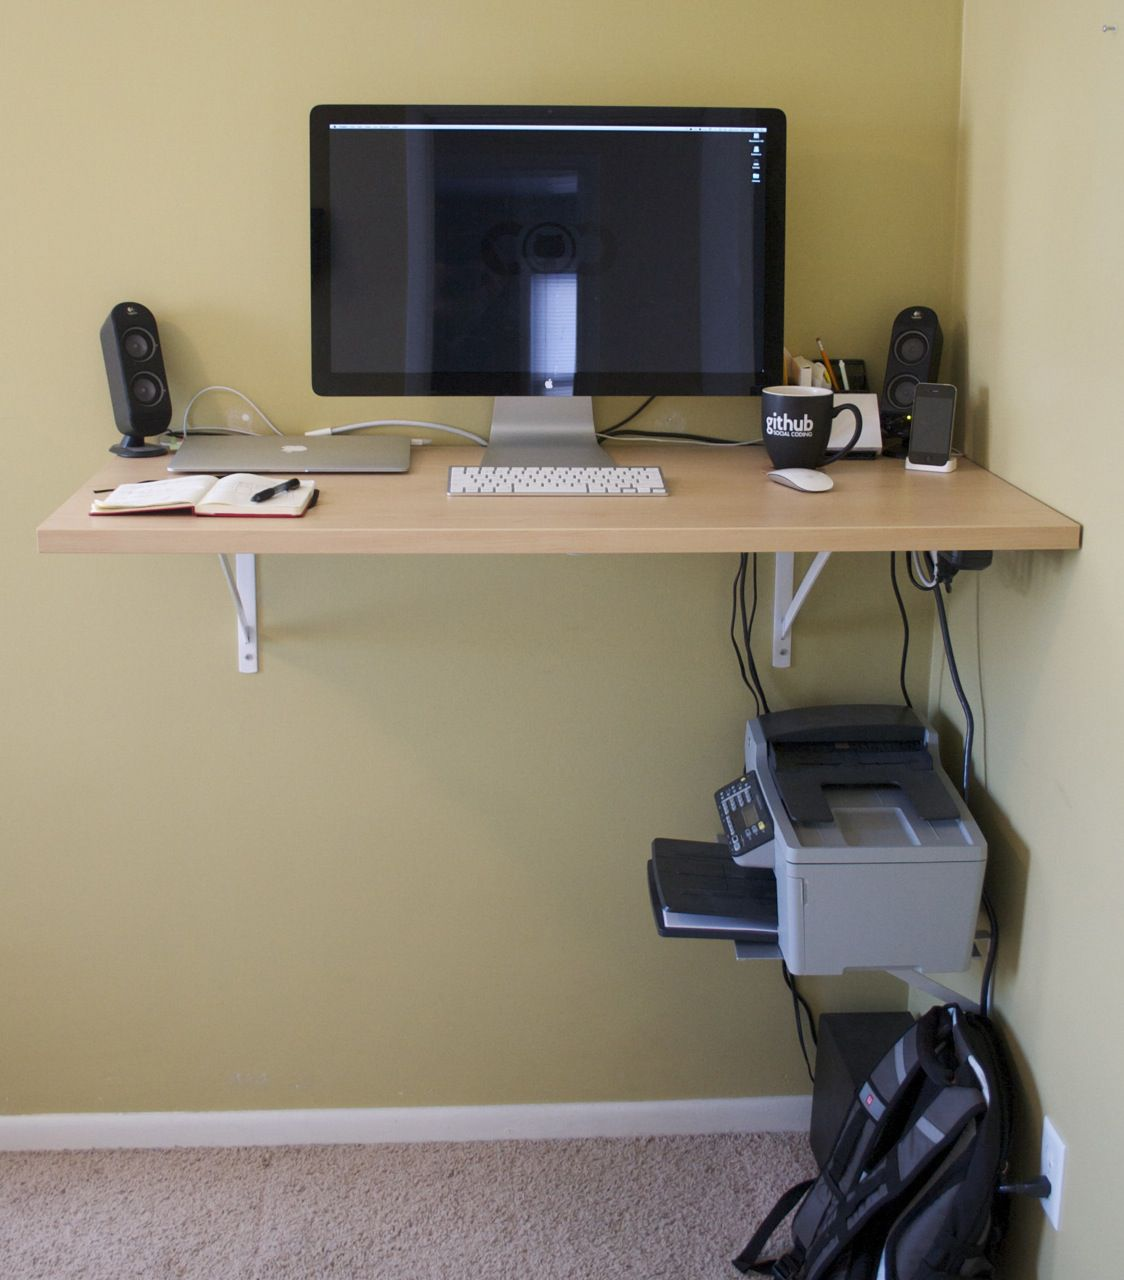 Small DIY wooden standing desk with a computer on top attached to a yellow wall.